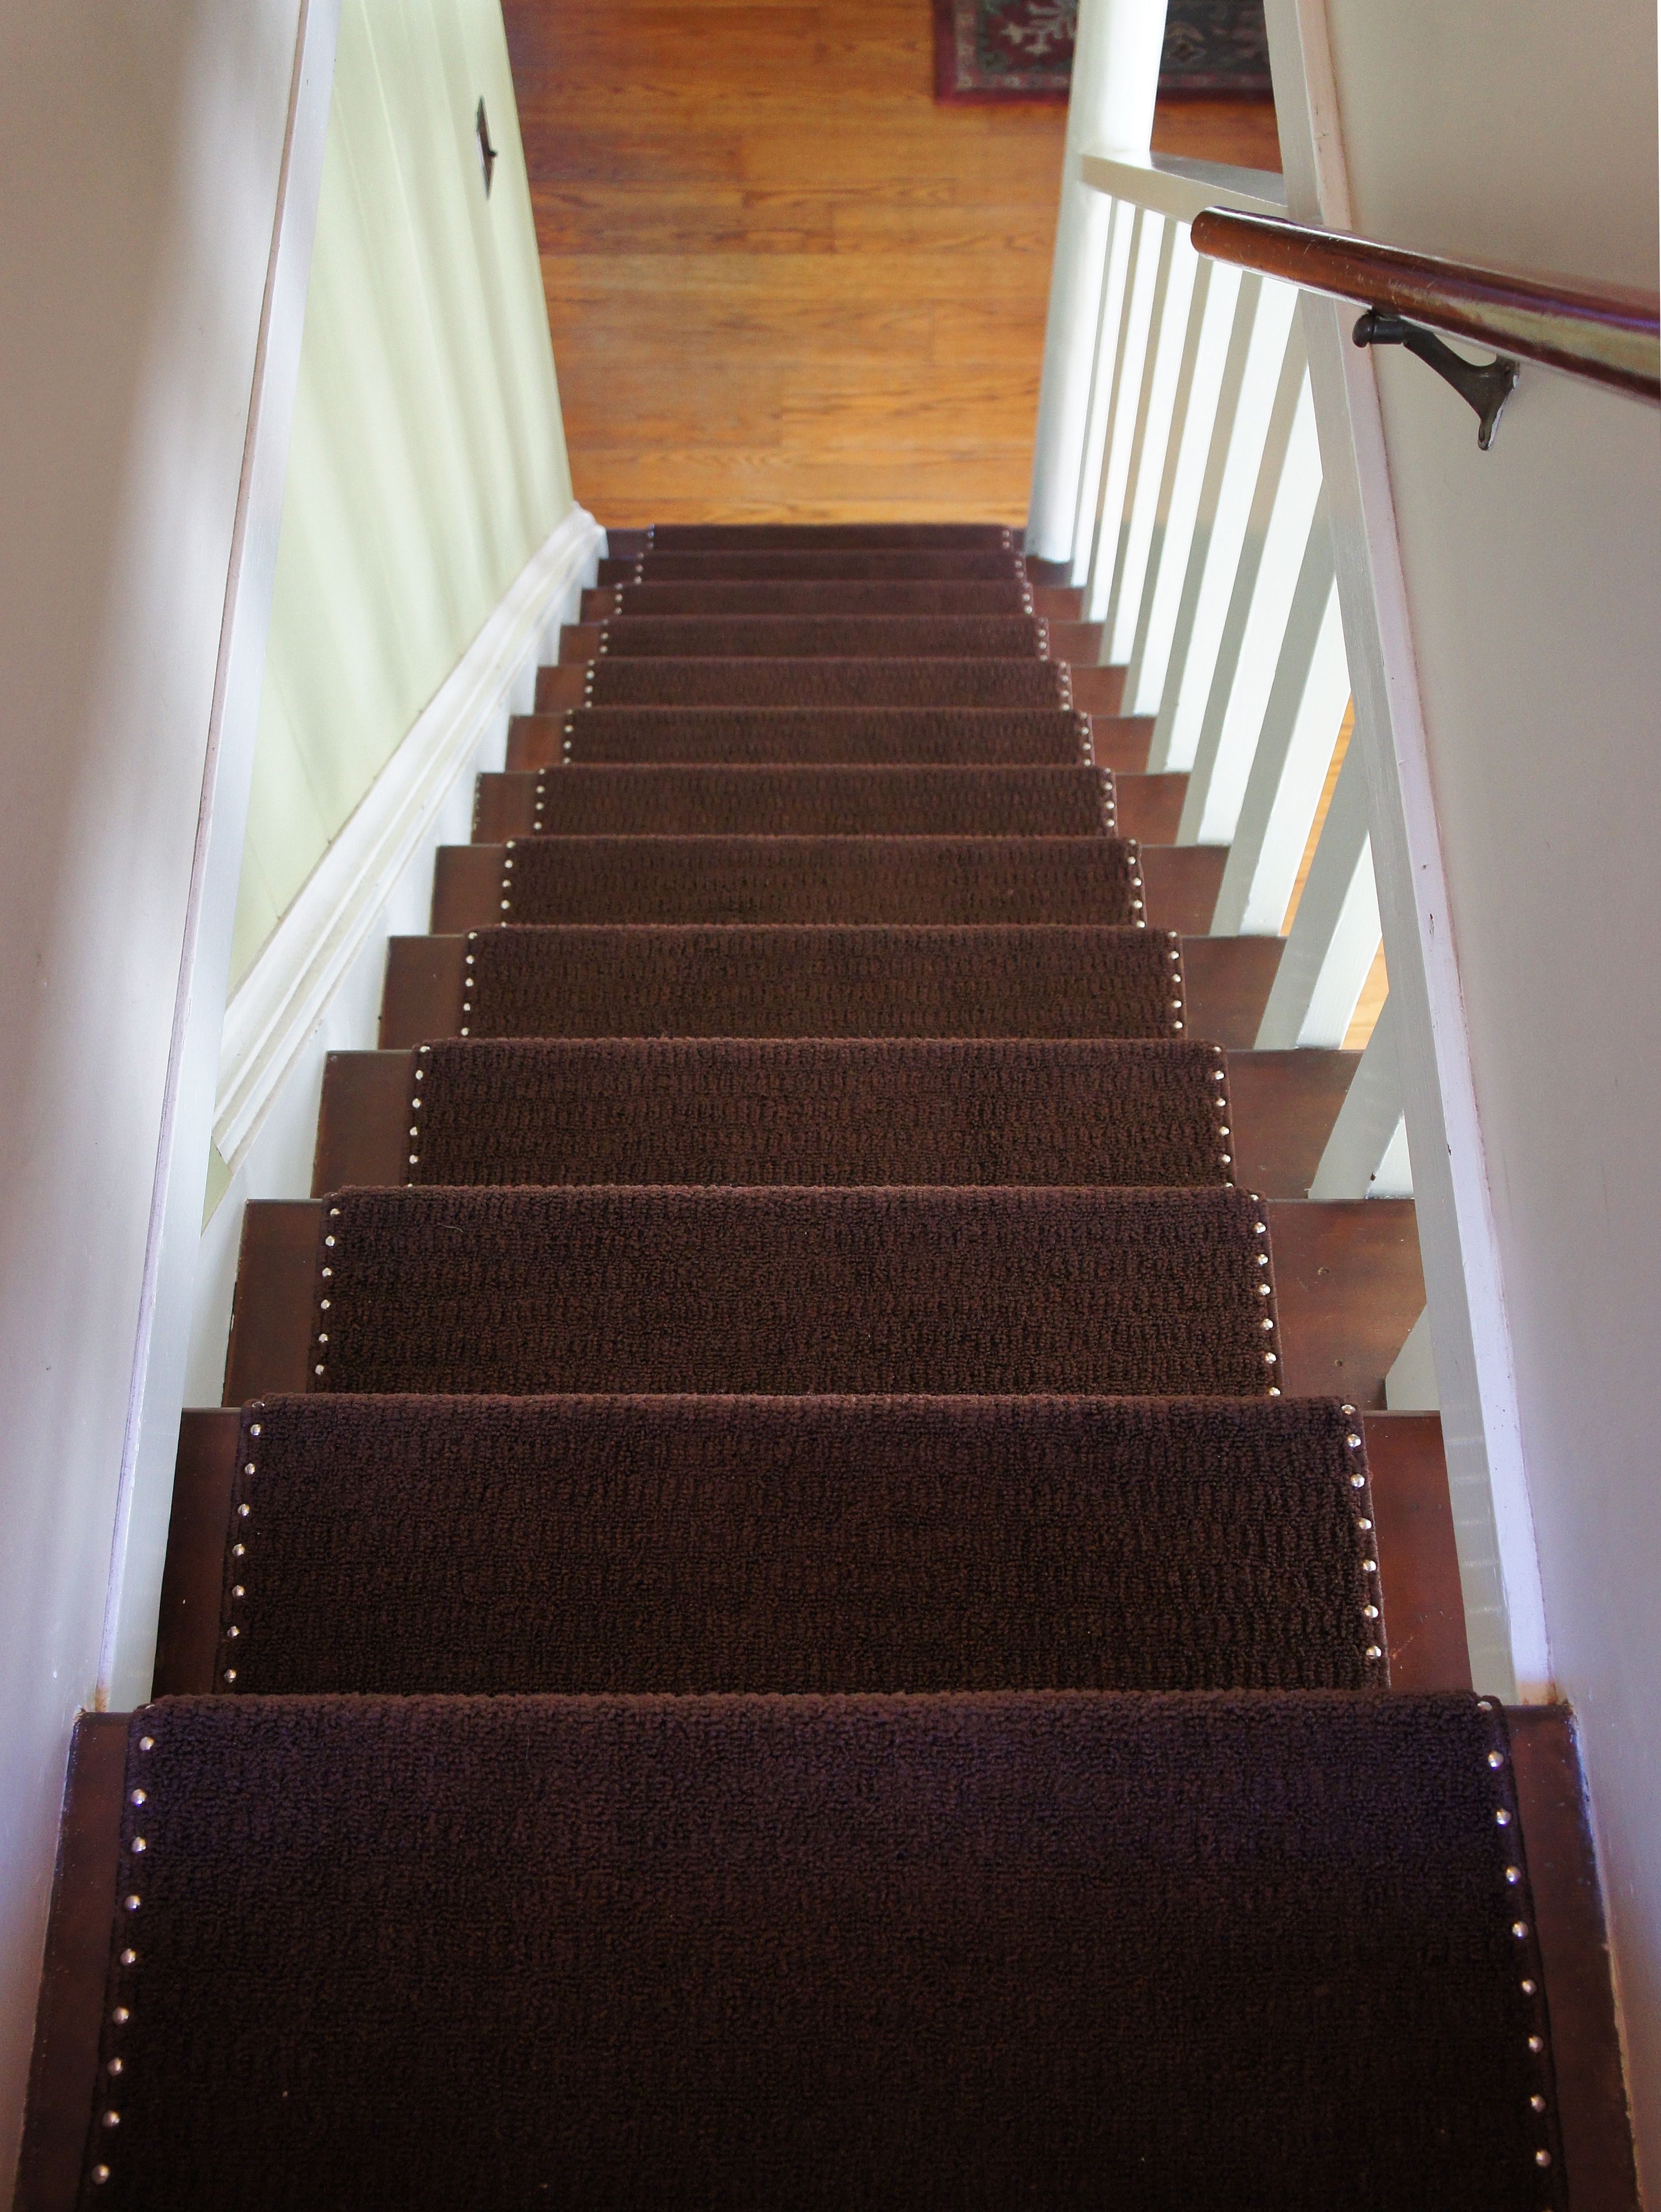 15 Best Stick On Carpet For Stairs Stair Tread Rugs Ideas | Best Rug For Stairs